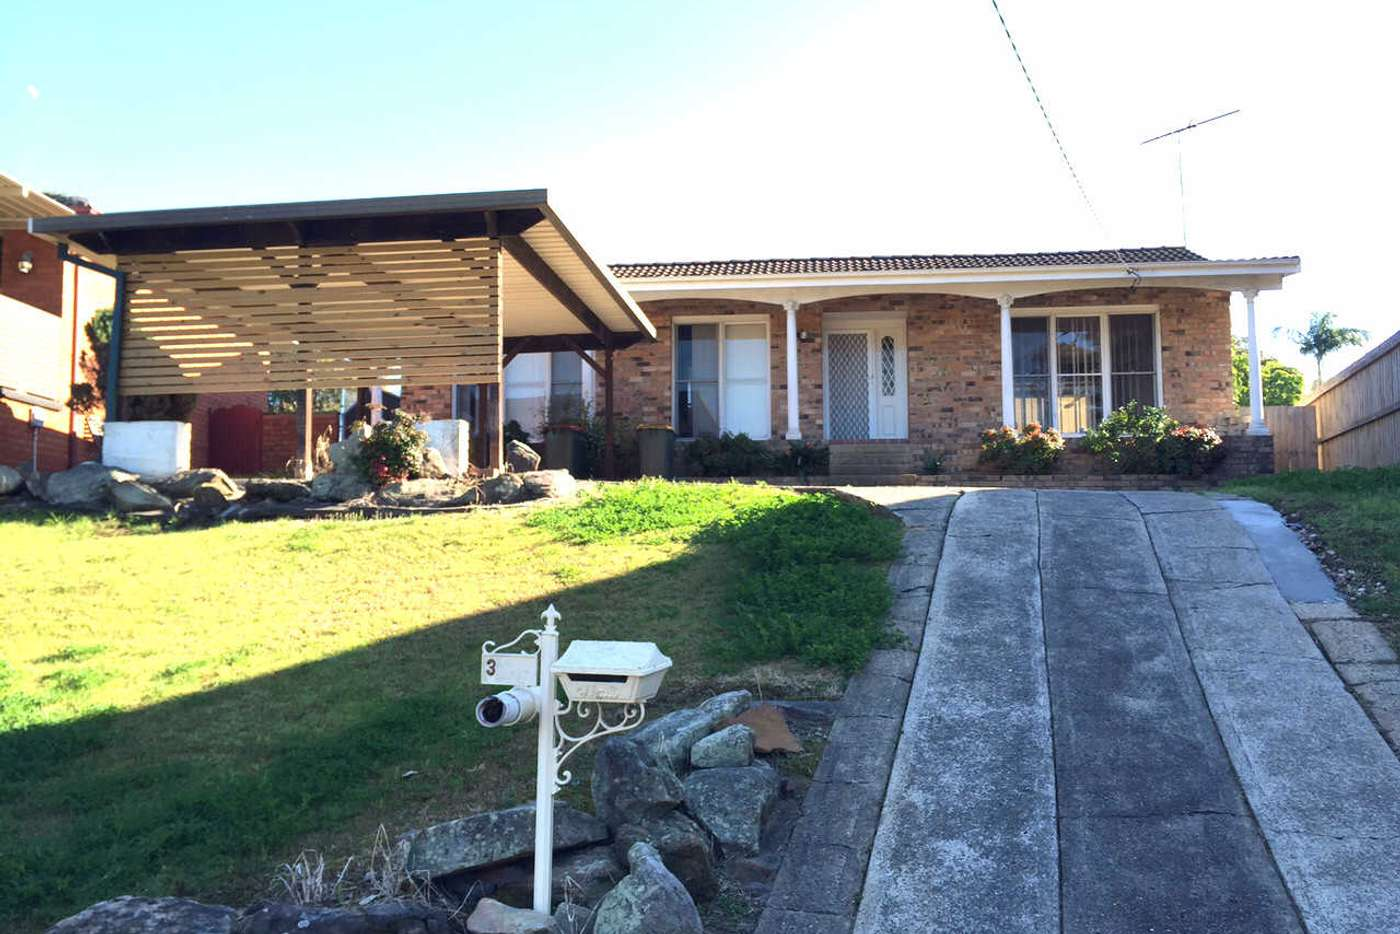 Main view of Homely house listing, 3 Burra Place, Greystanes NSW 2145